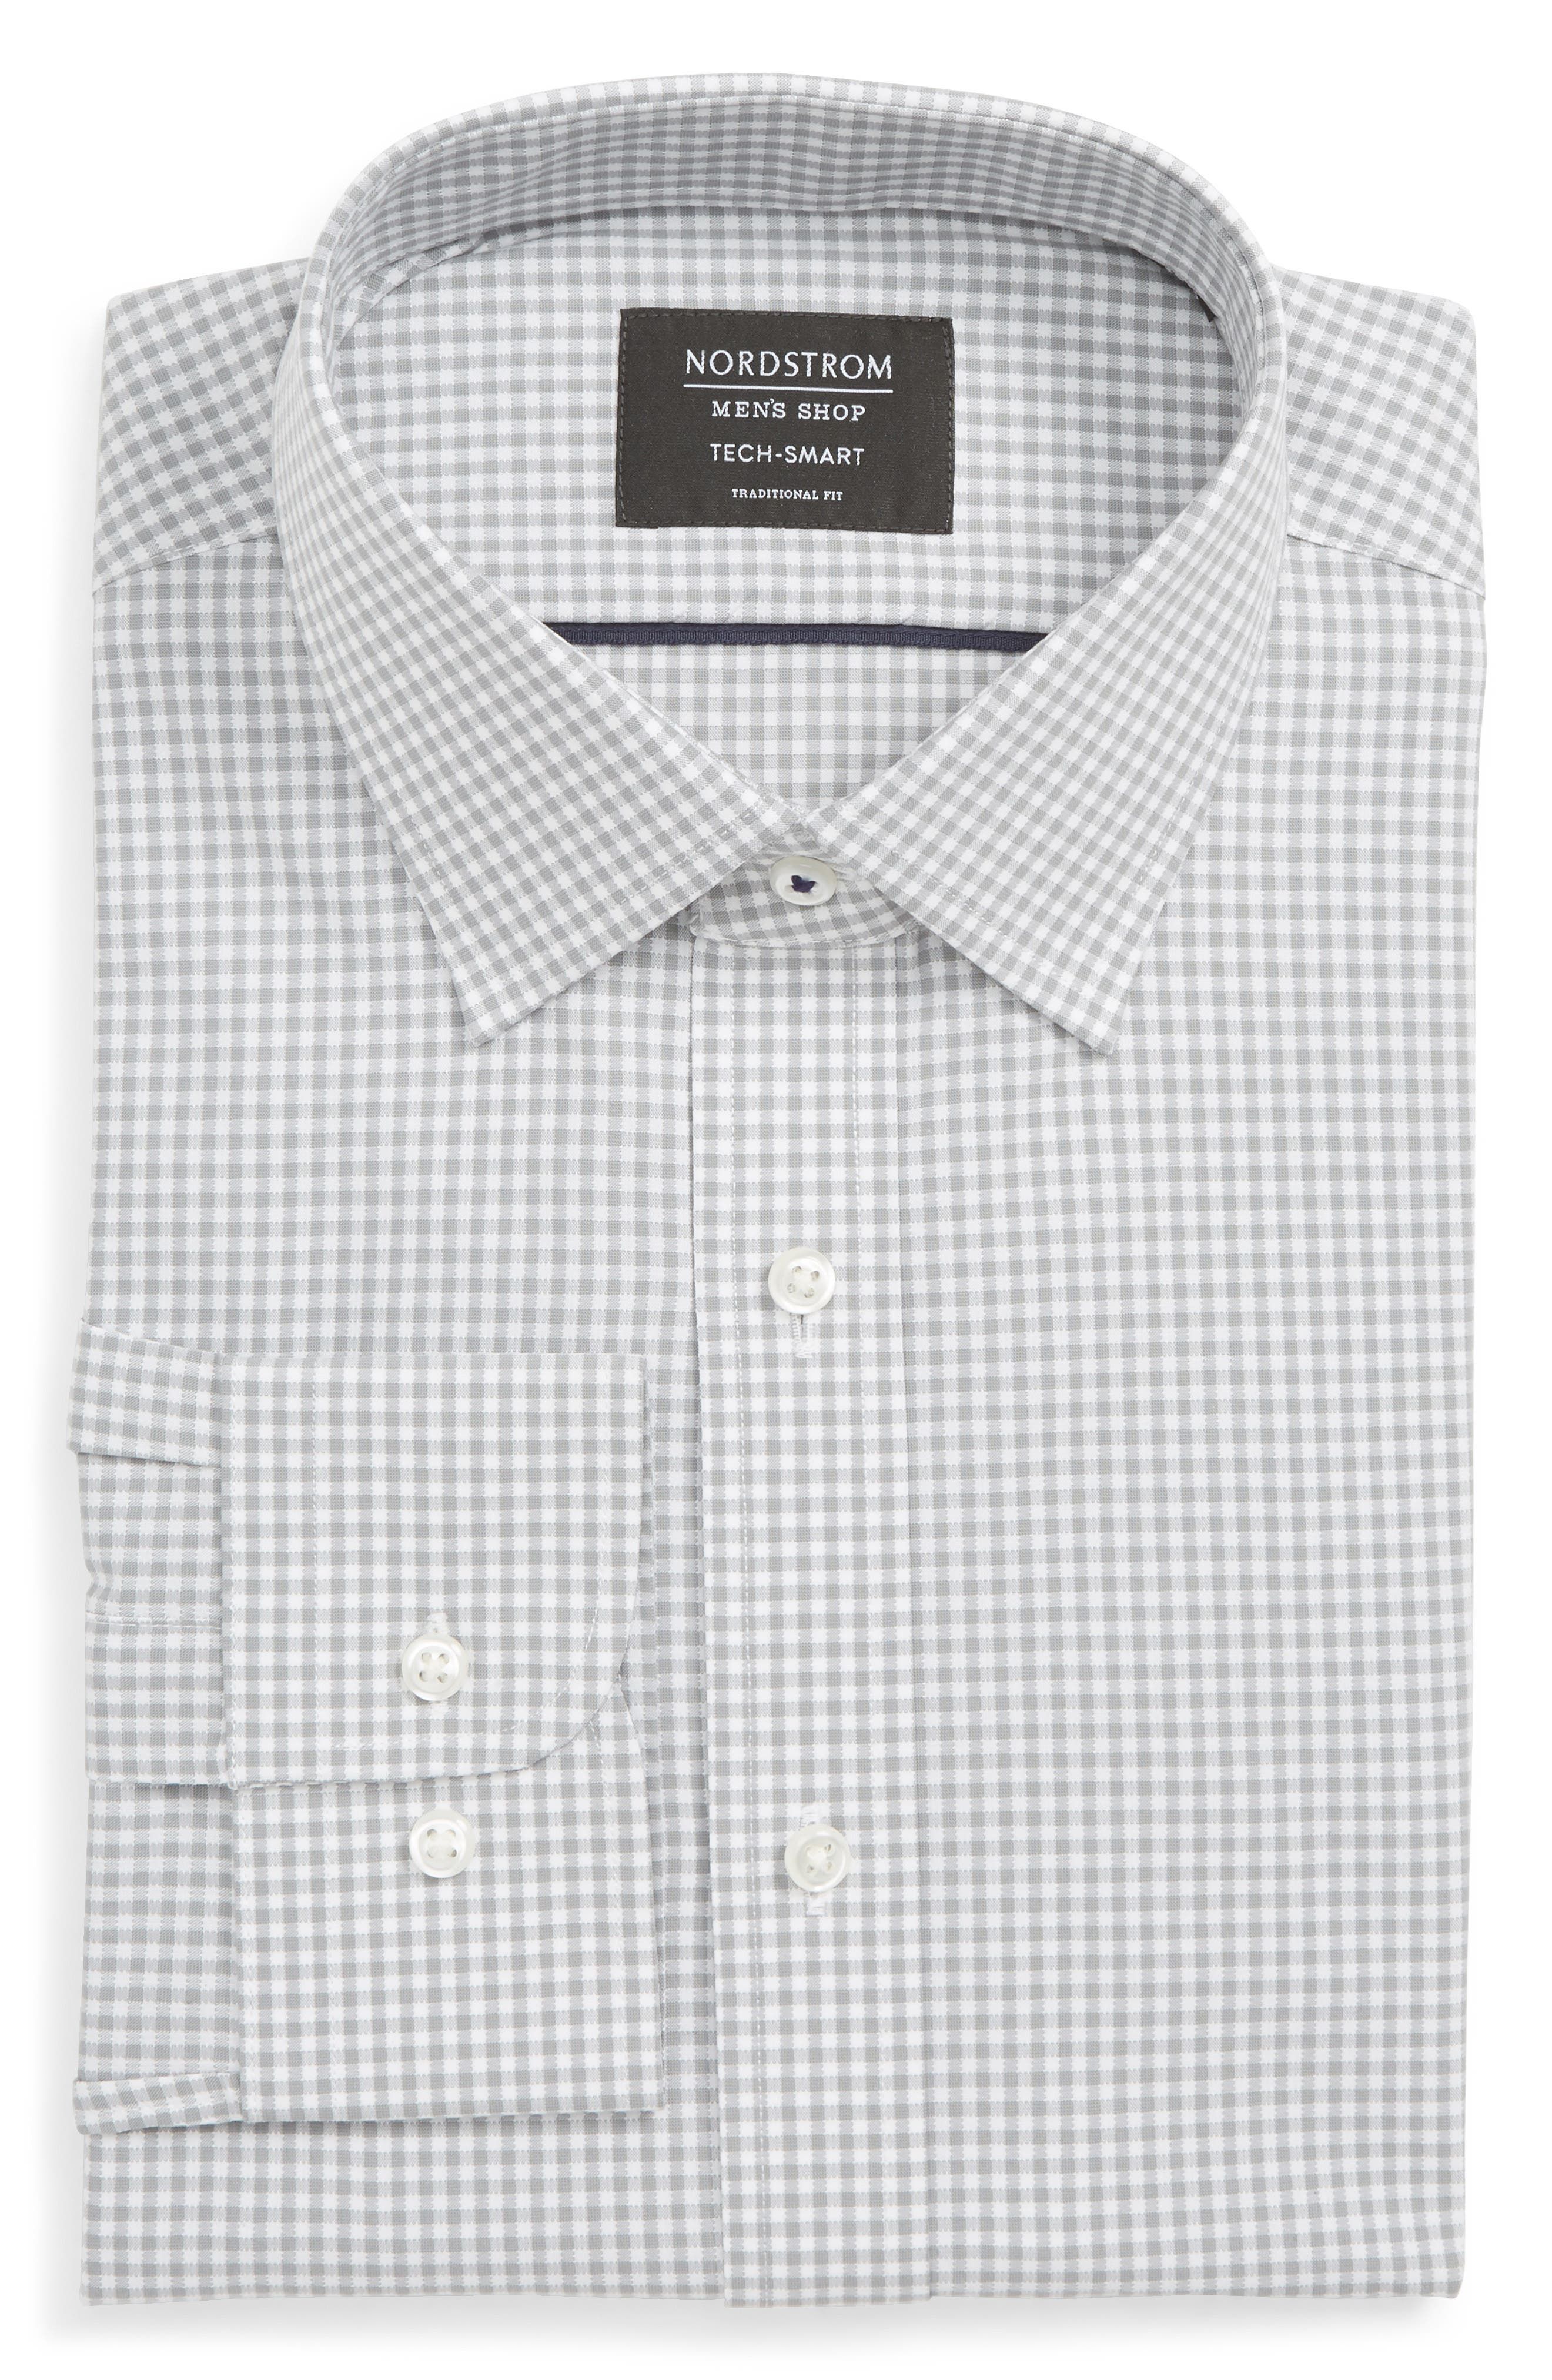 Tech-Smart Traditional Fit Check Stretch Dress Shirt,                             Main thumbnail 1, color,                             GREY SLEET